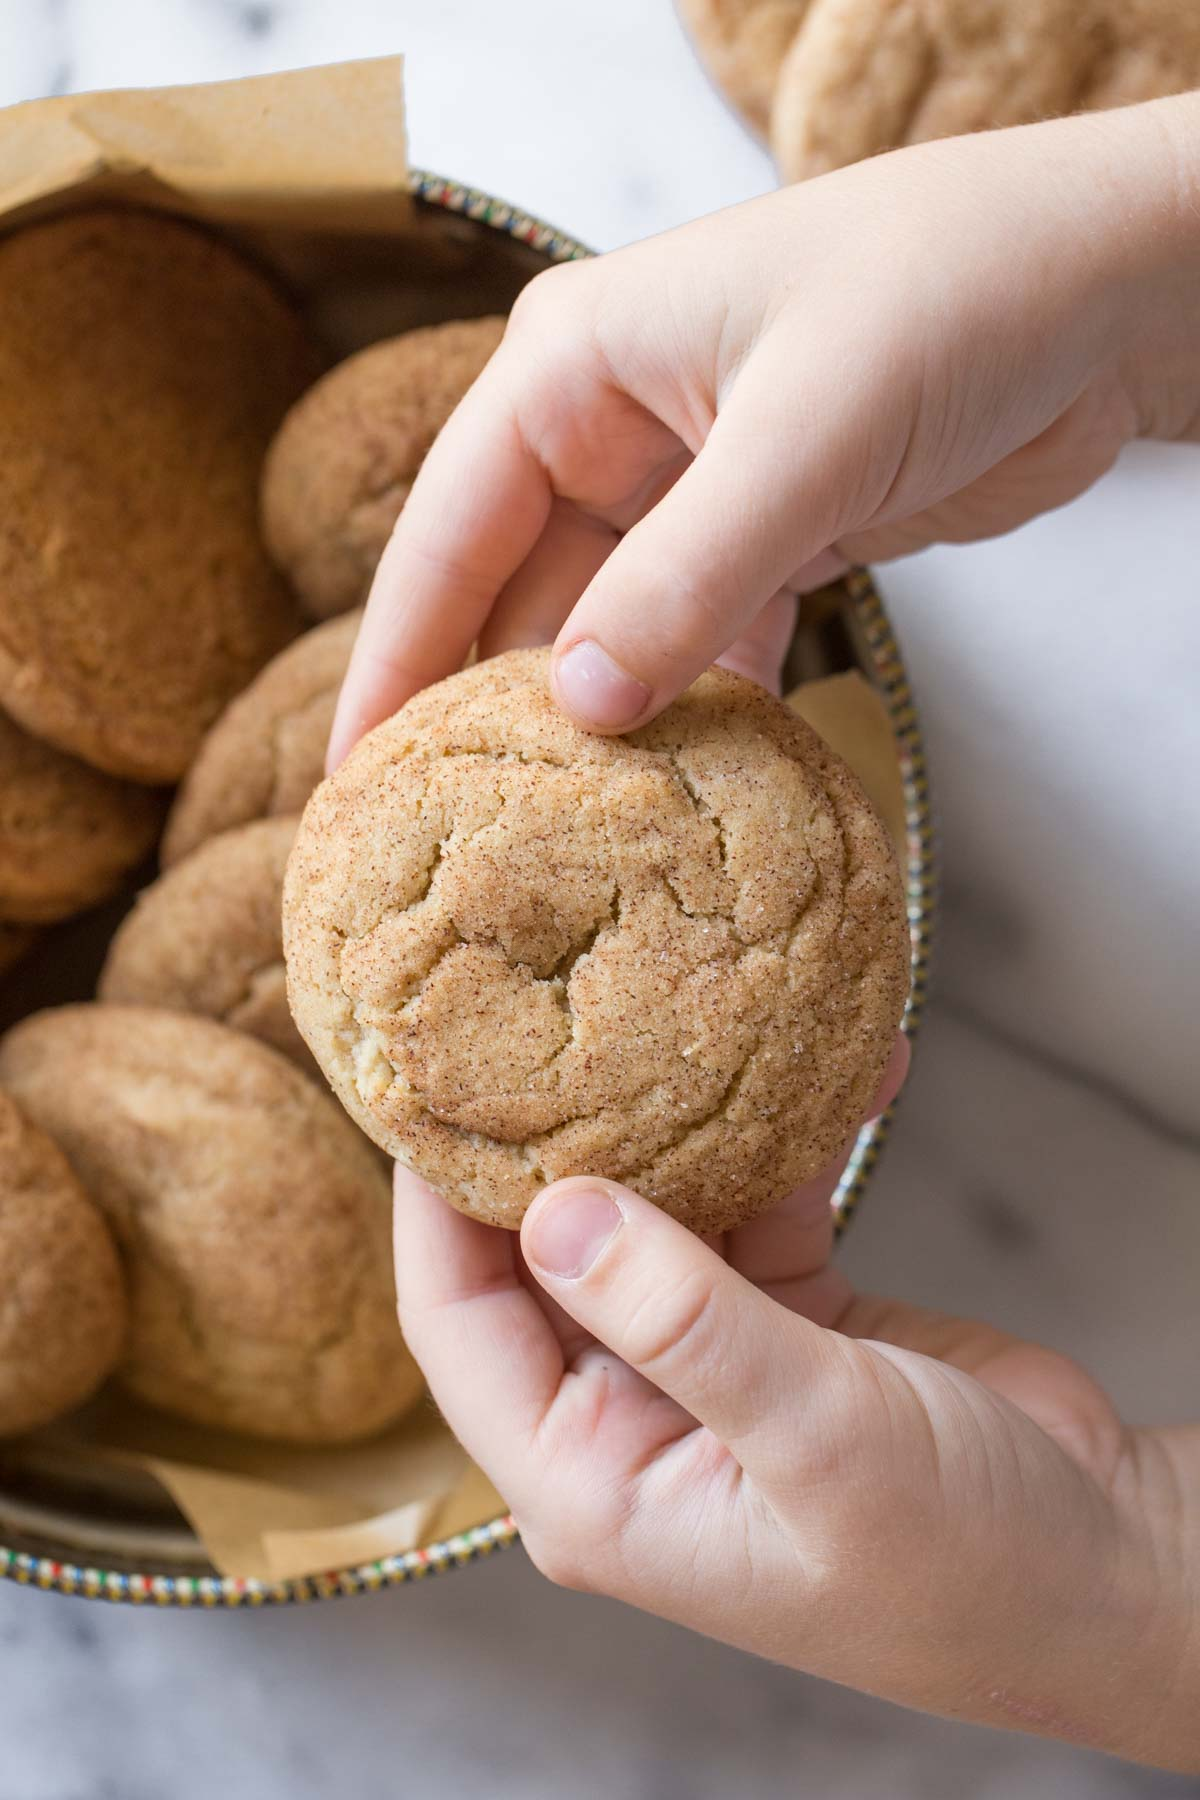 A child's hand holding a Super Soft Snickerdoodle.